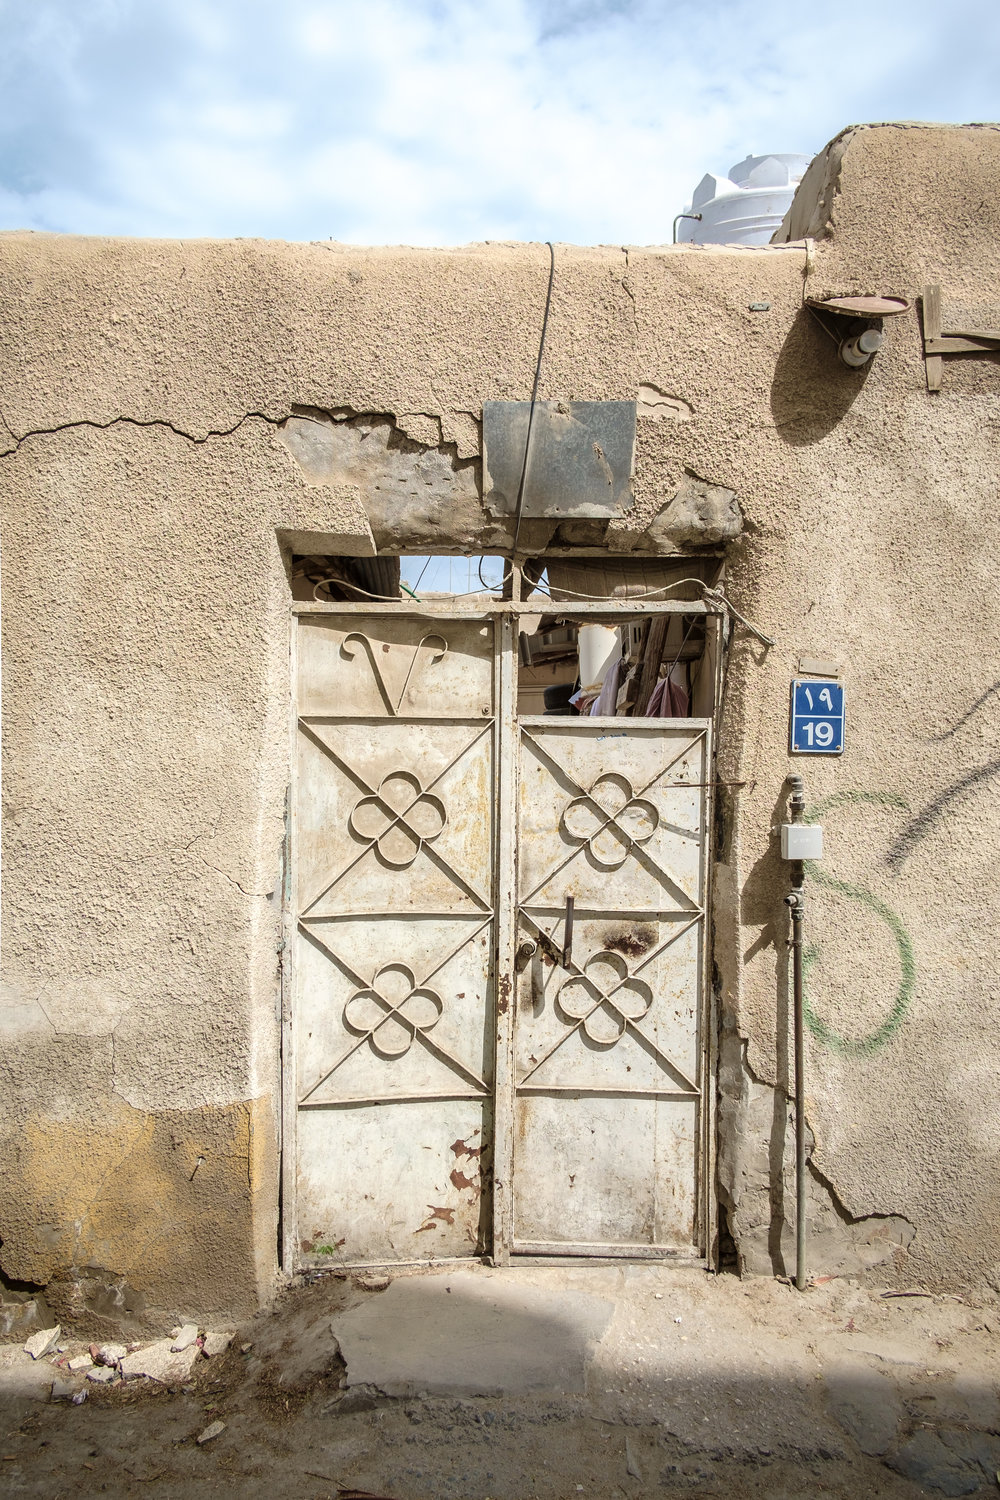 The door of a residential compound in the old Musheireb neighborhood of Doha. Much of this neighborhood has been torn down, and the residents forcibly removed, in order to build the New Msheireb development. Qatar is in a race to revitalize and modernize in time to host the 2022 FIFA World Cup.